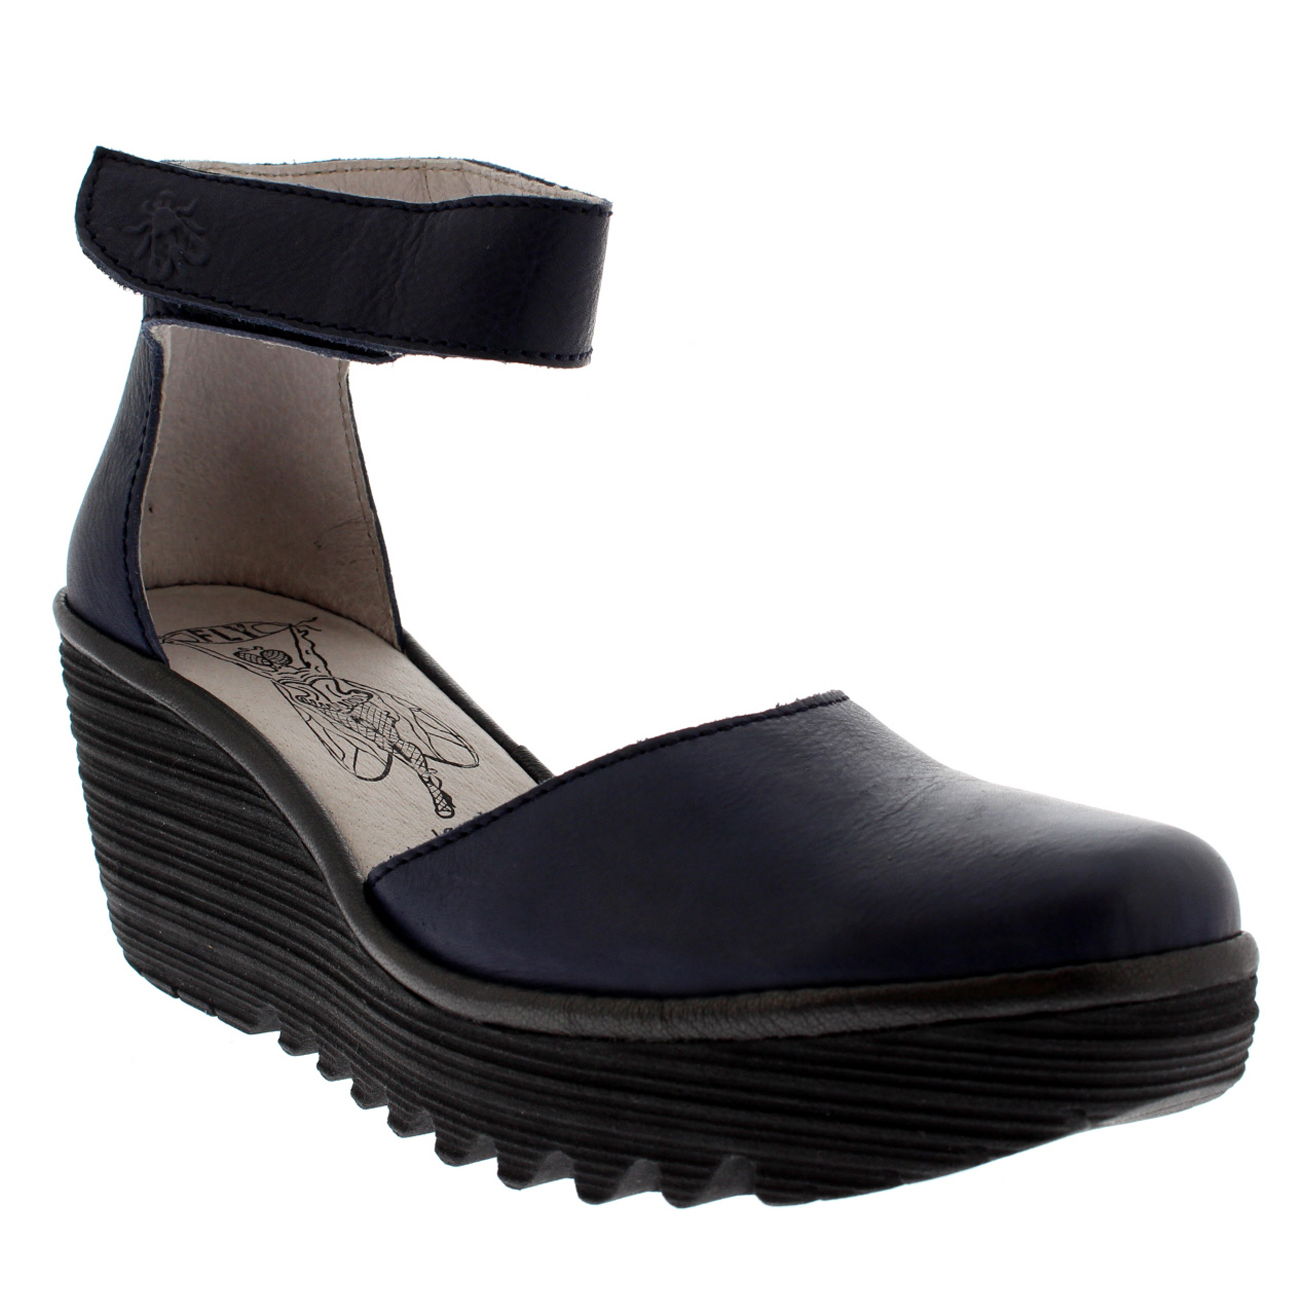 Damenschuhe Fly London Heel Yand Leder Strappy Wedge Heel London Summer Sandales Schuhes UK 3-9 2e2b3f